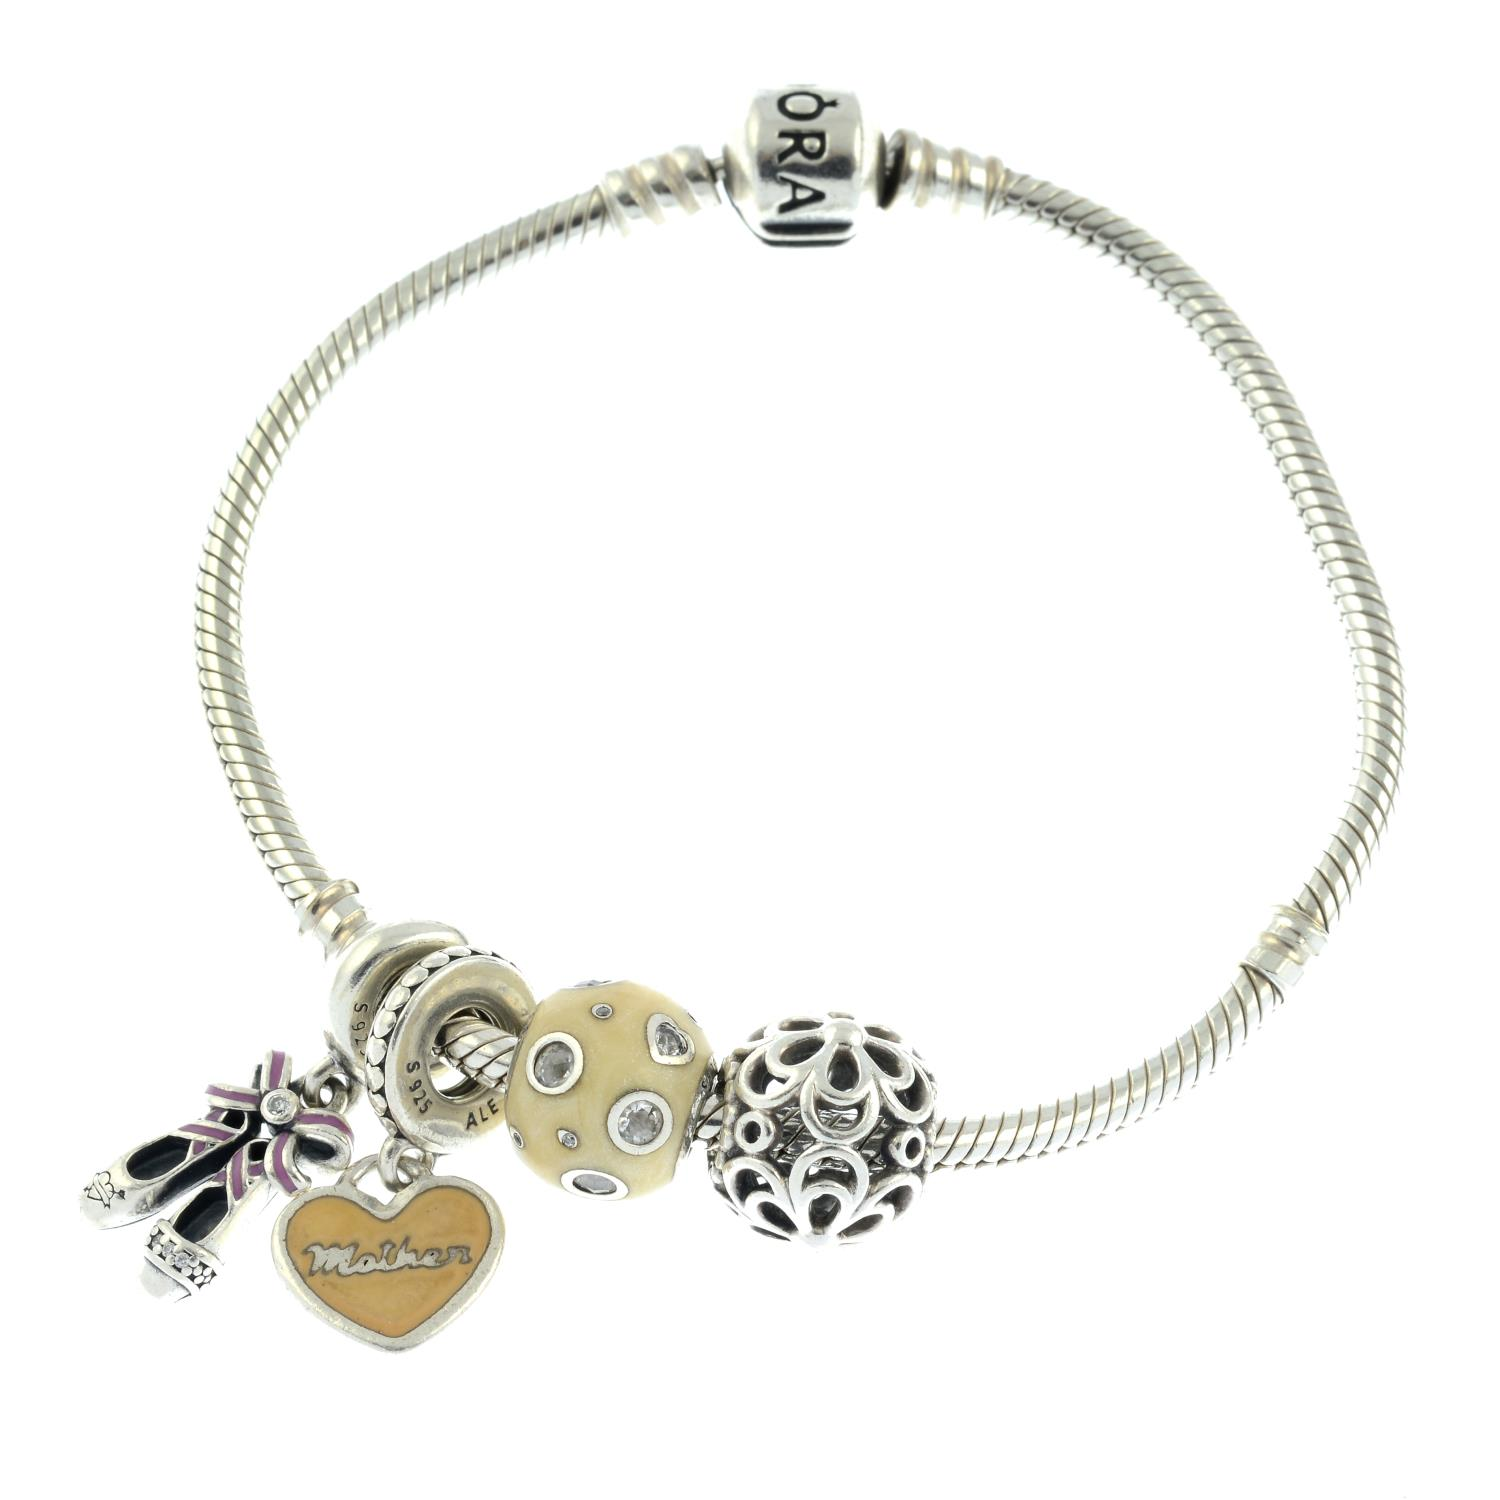 A small selection of Pandora jewellery, to include two braclets.